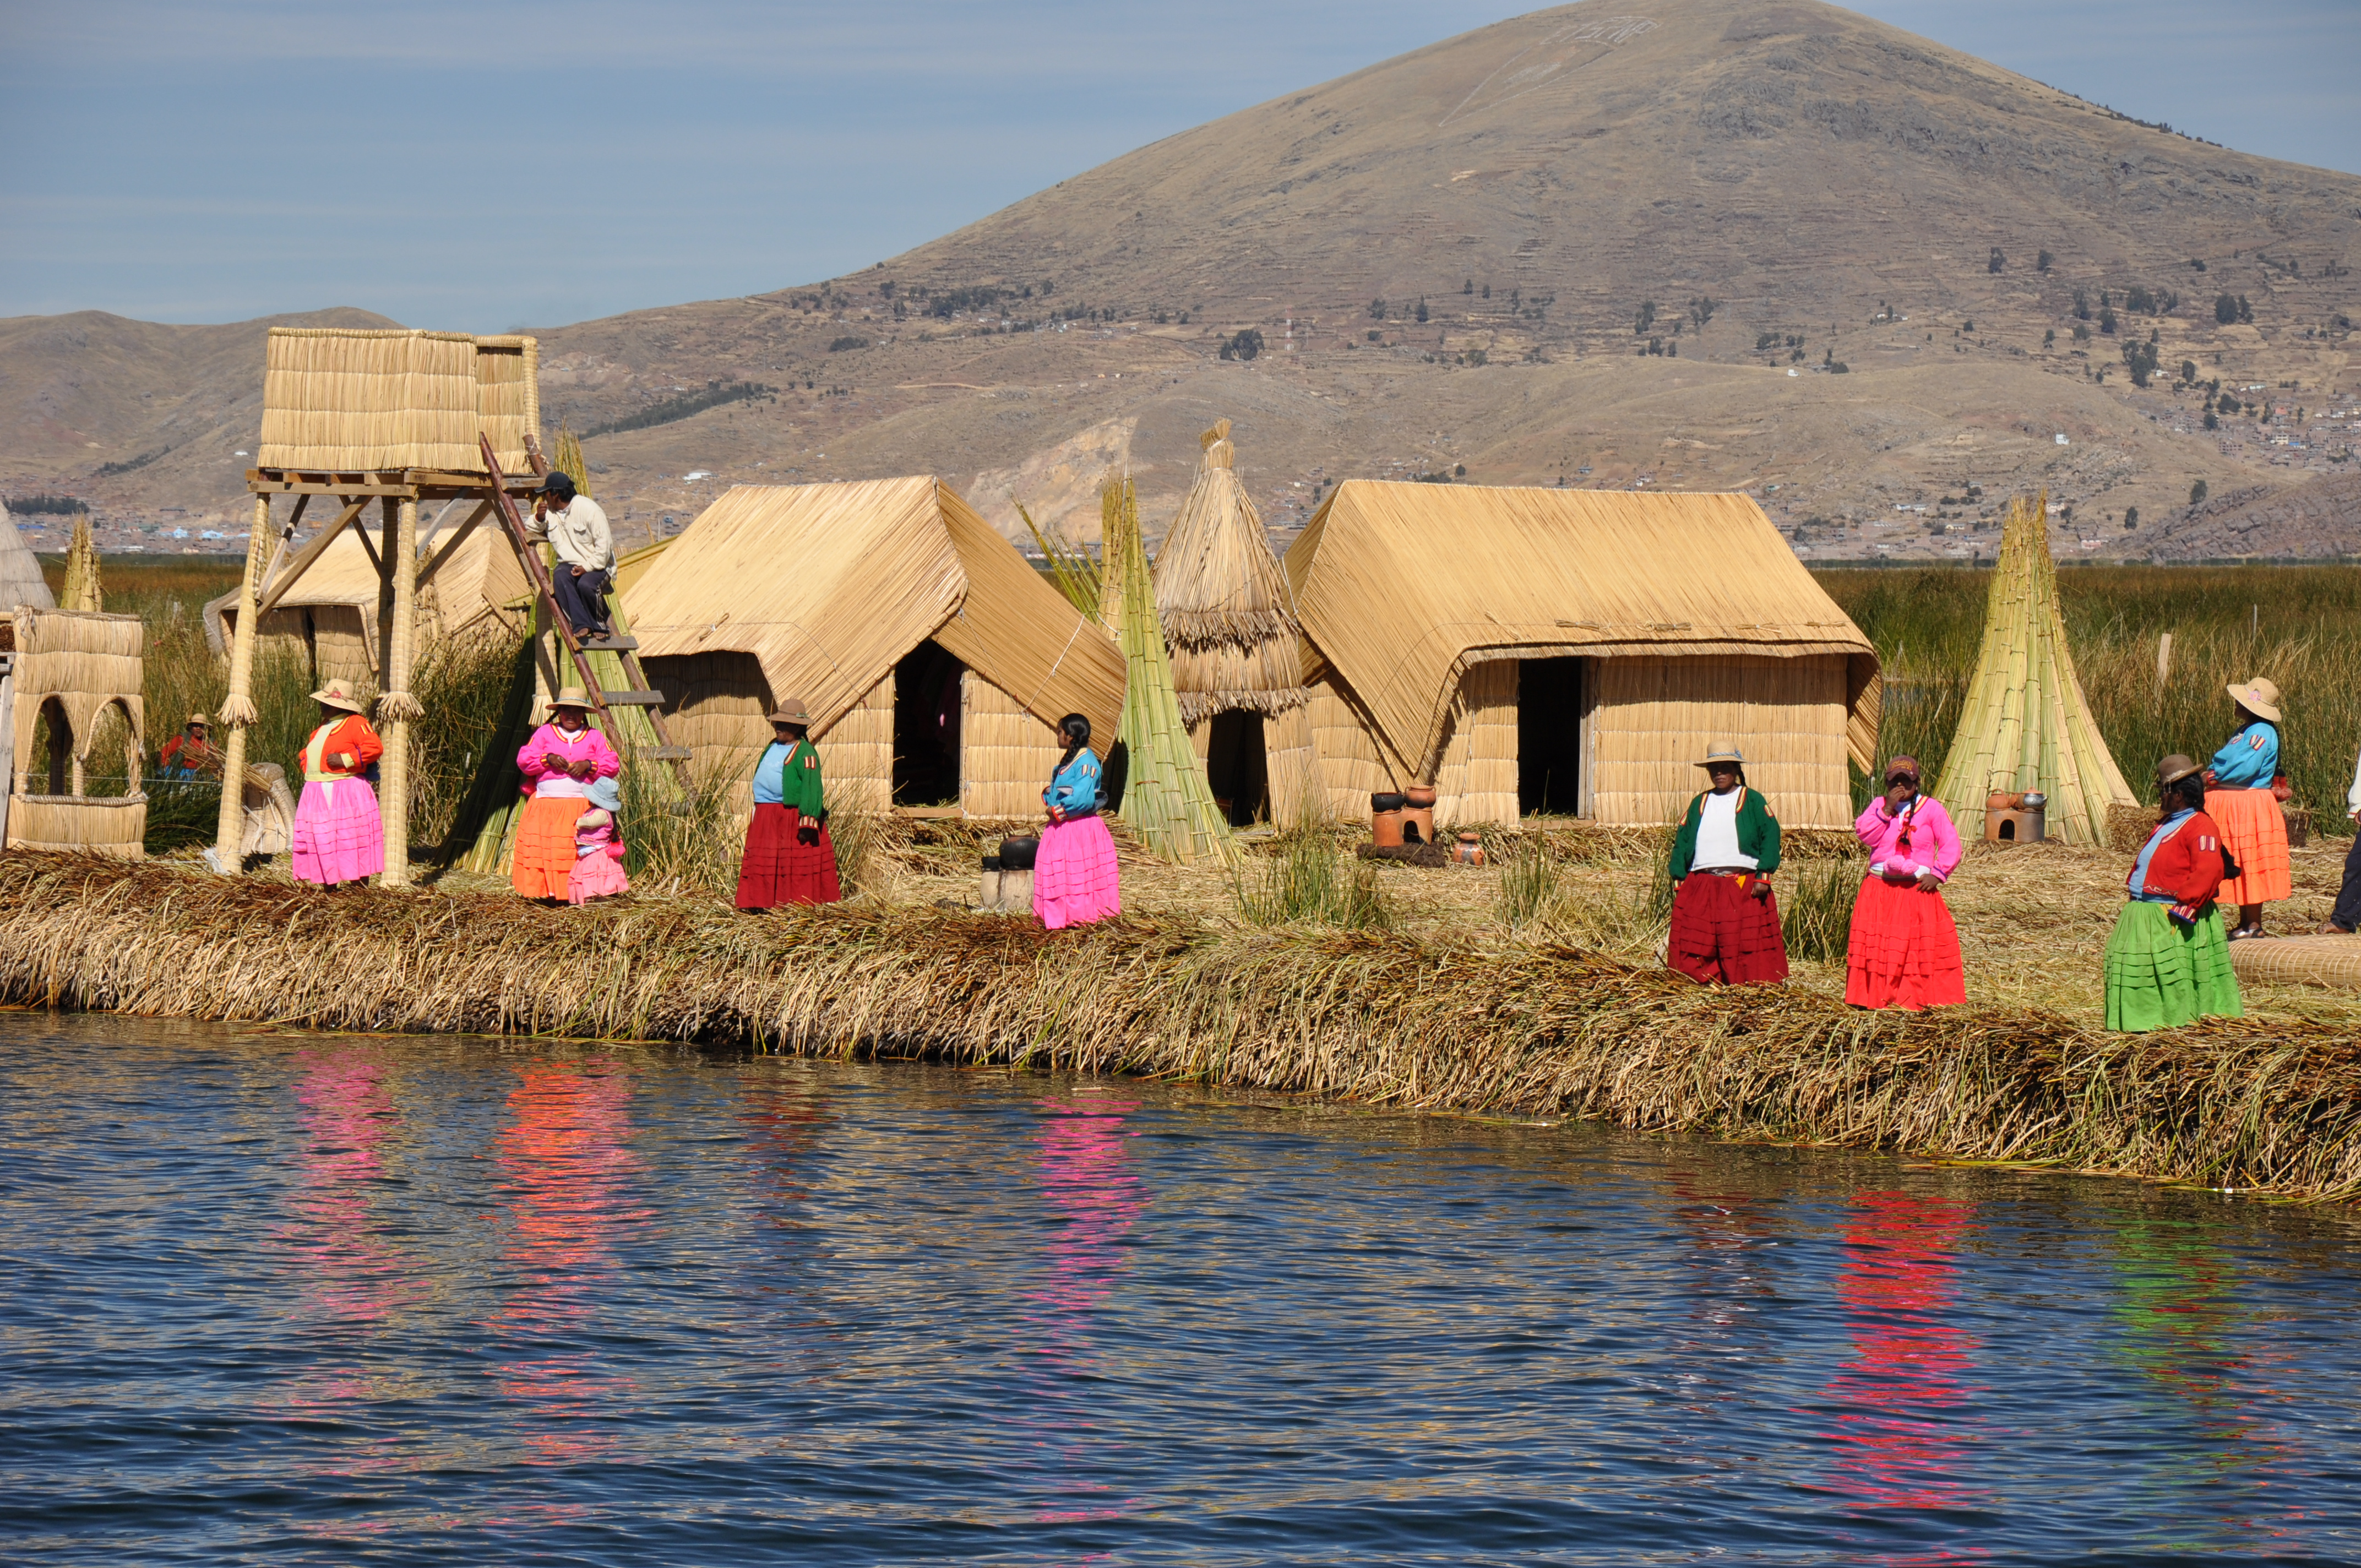 Floating Islands on Lake Titicaca